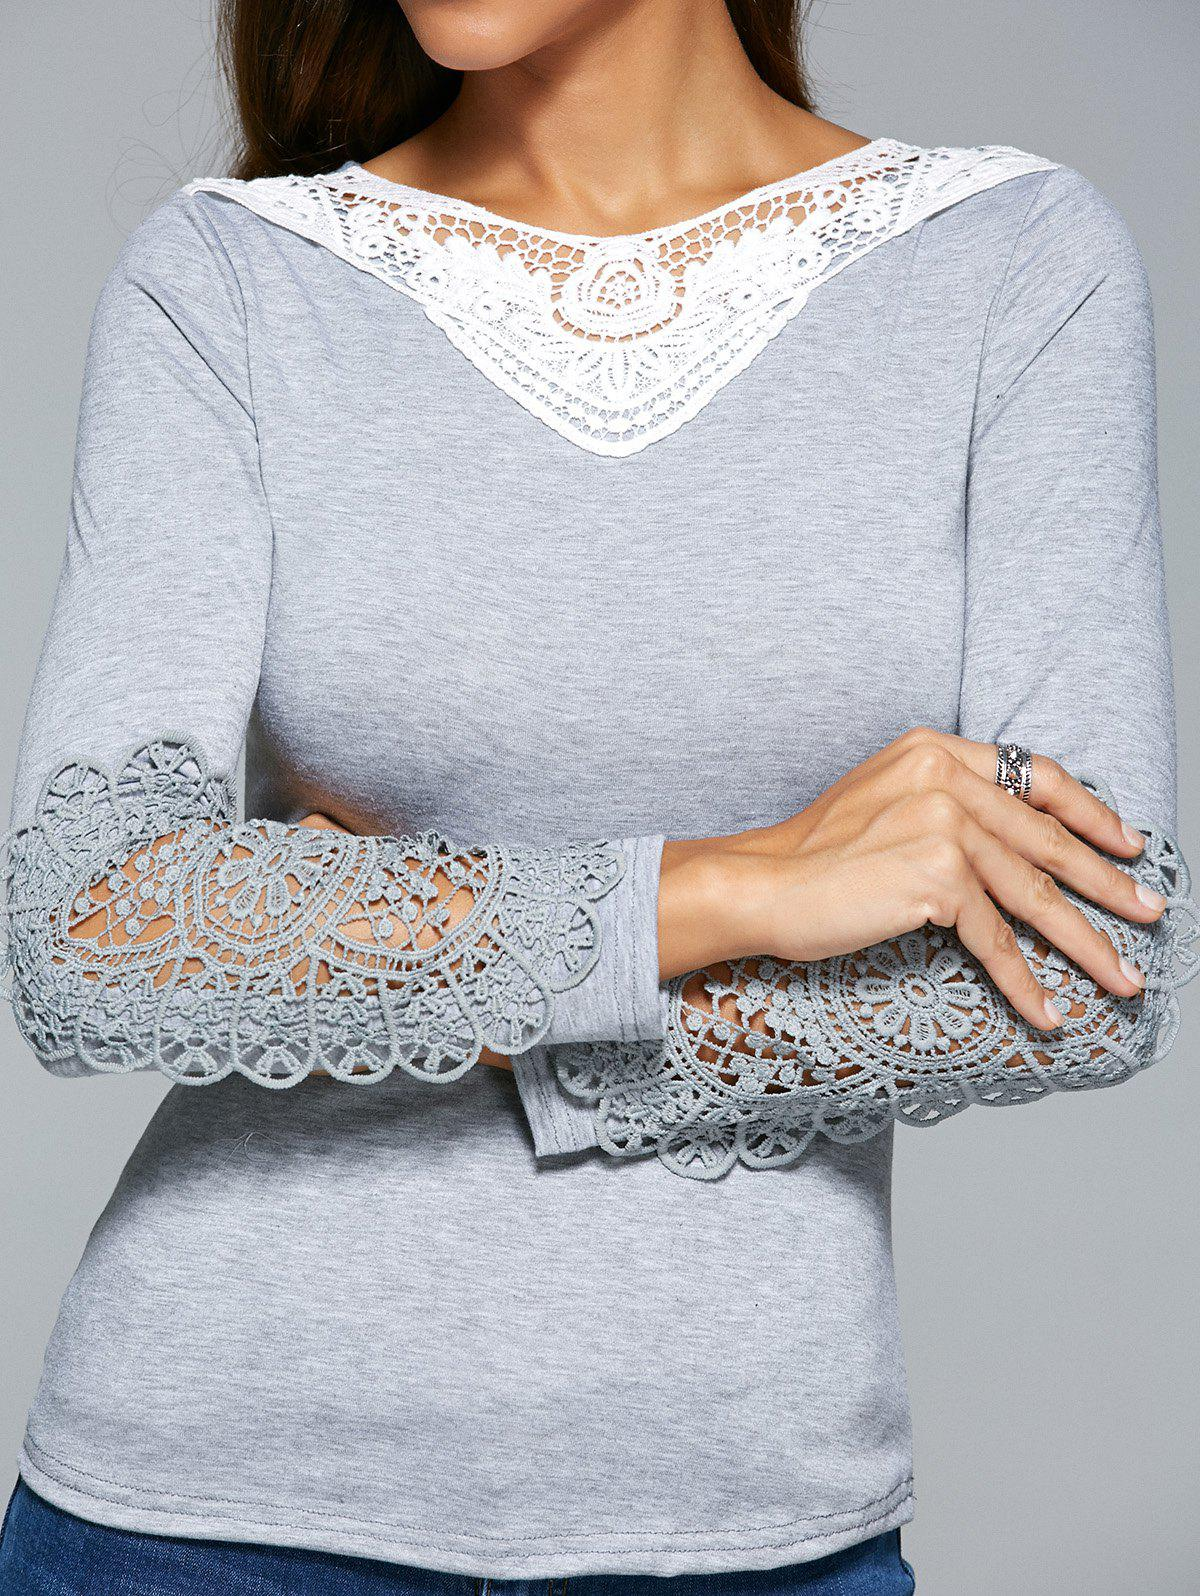 Lace Spliced Crochet Hollow Out T-Shirt